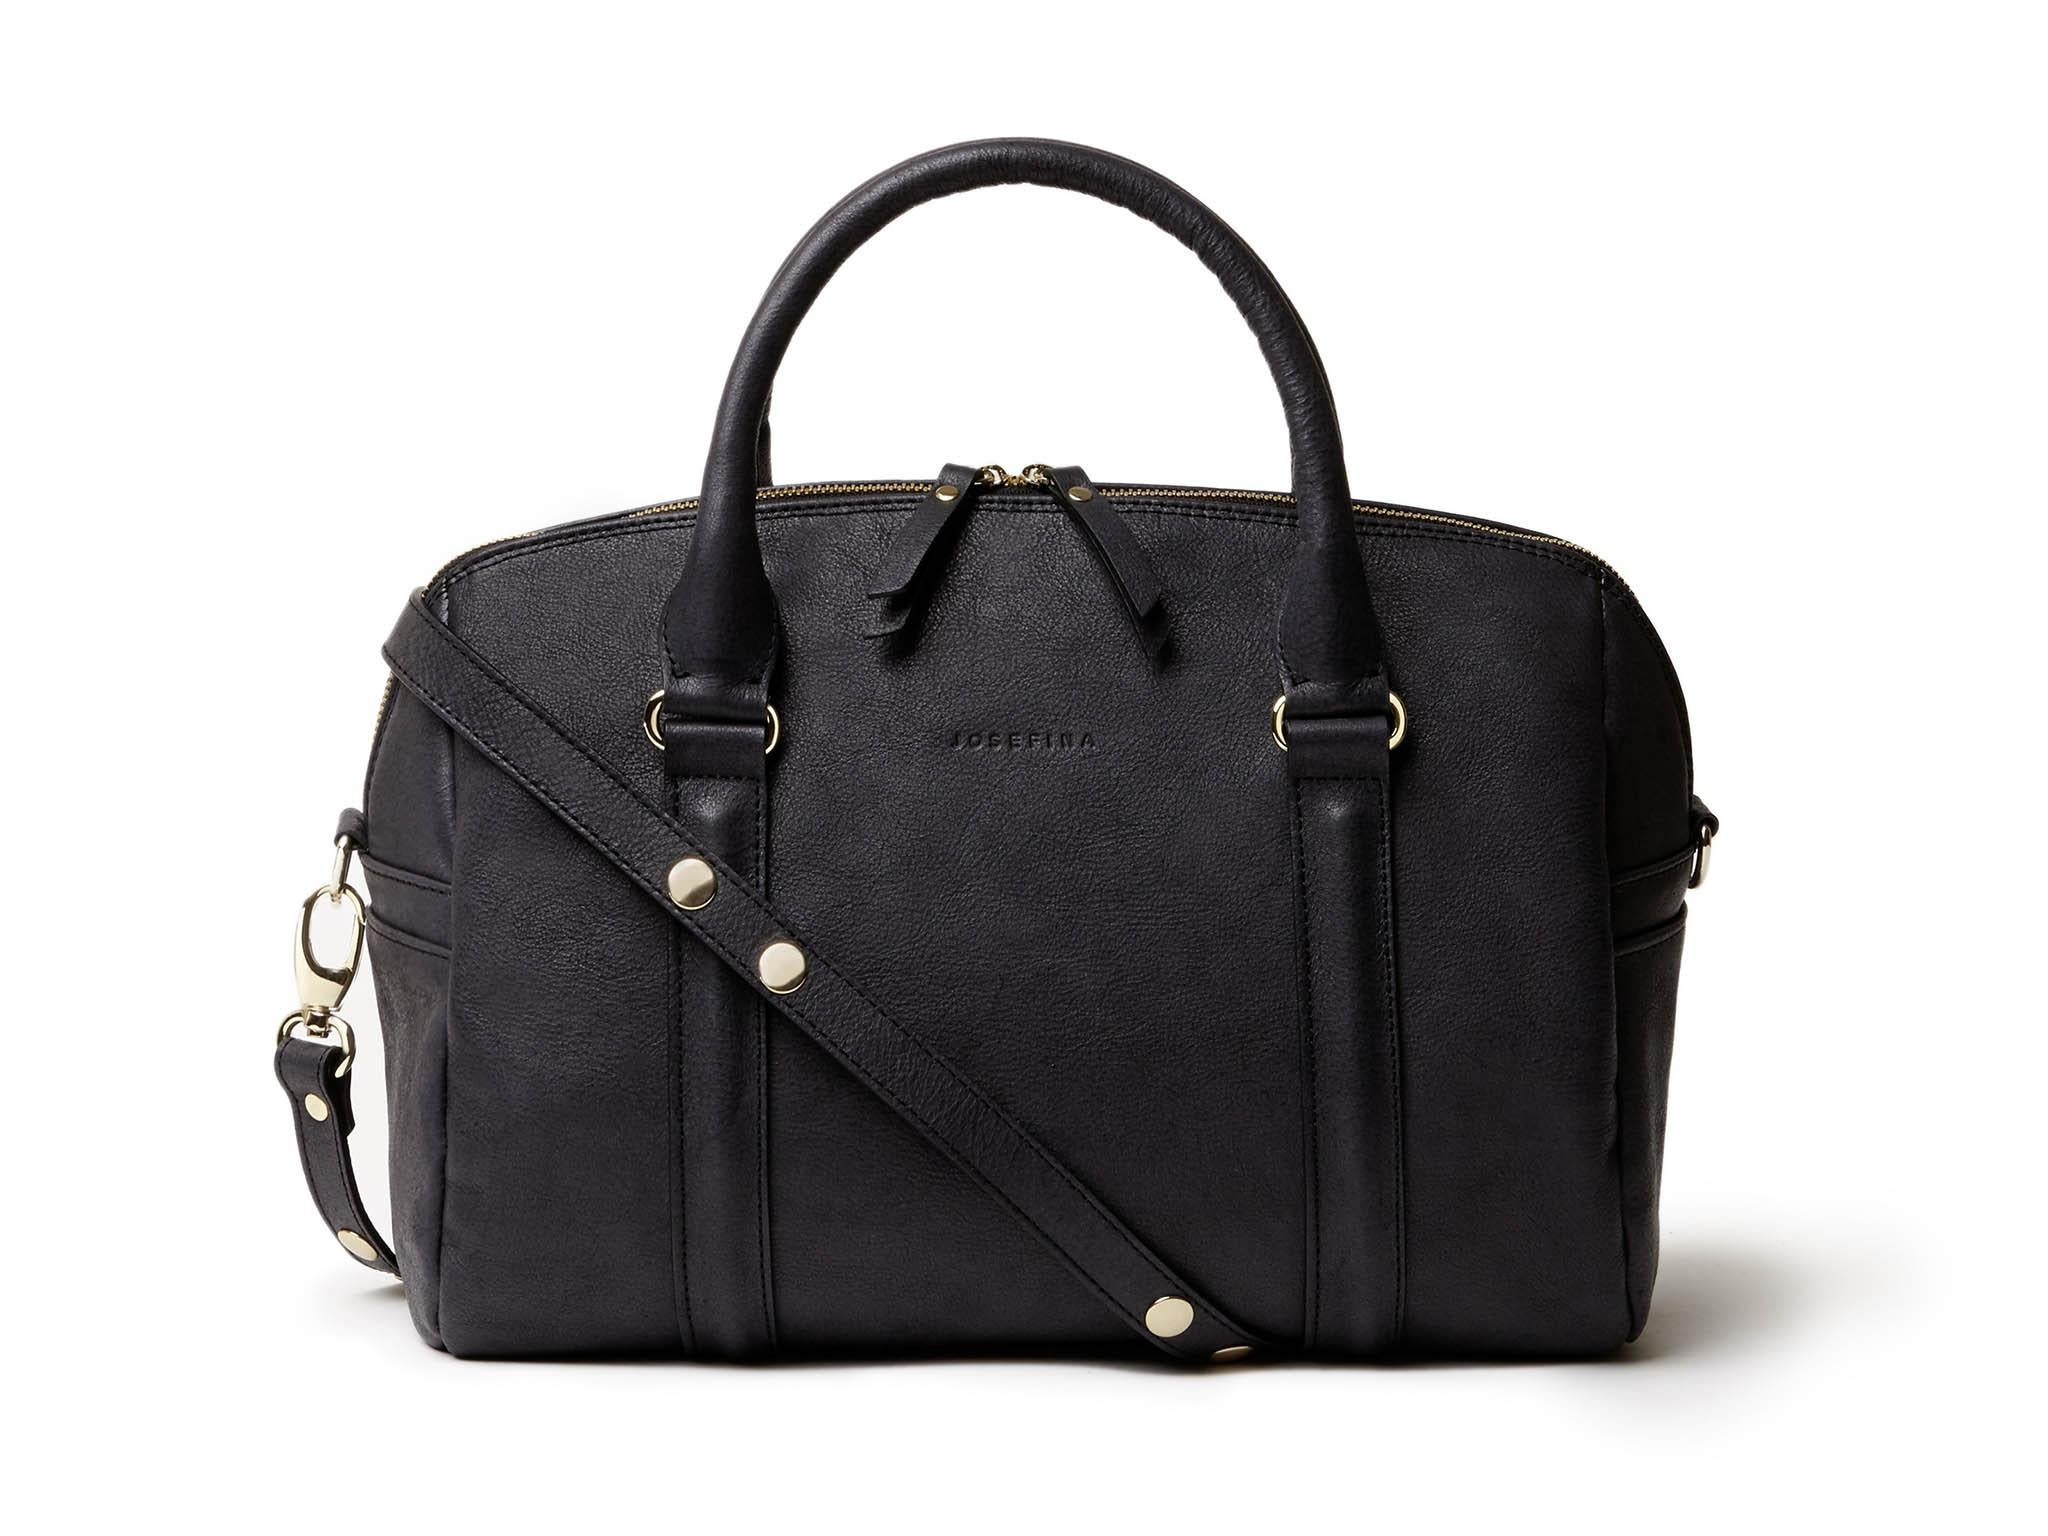 ed8dc9eebe44 10 best changing bags | The Independent